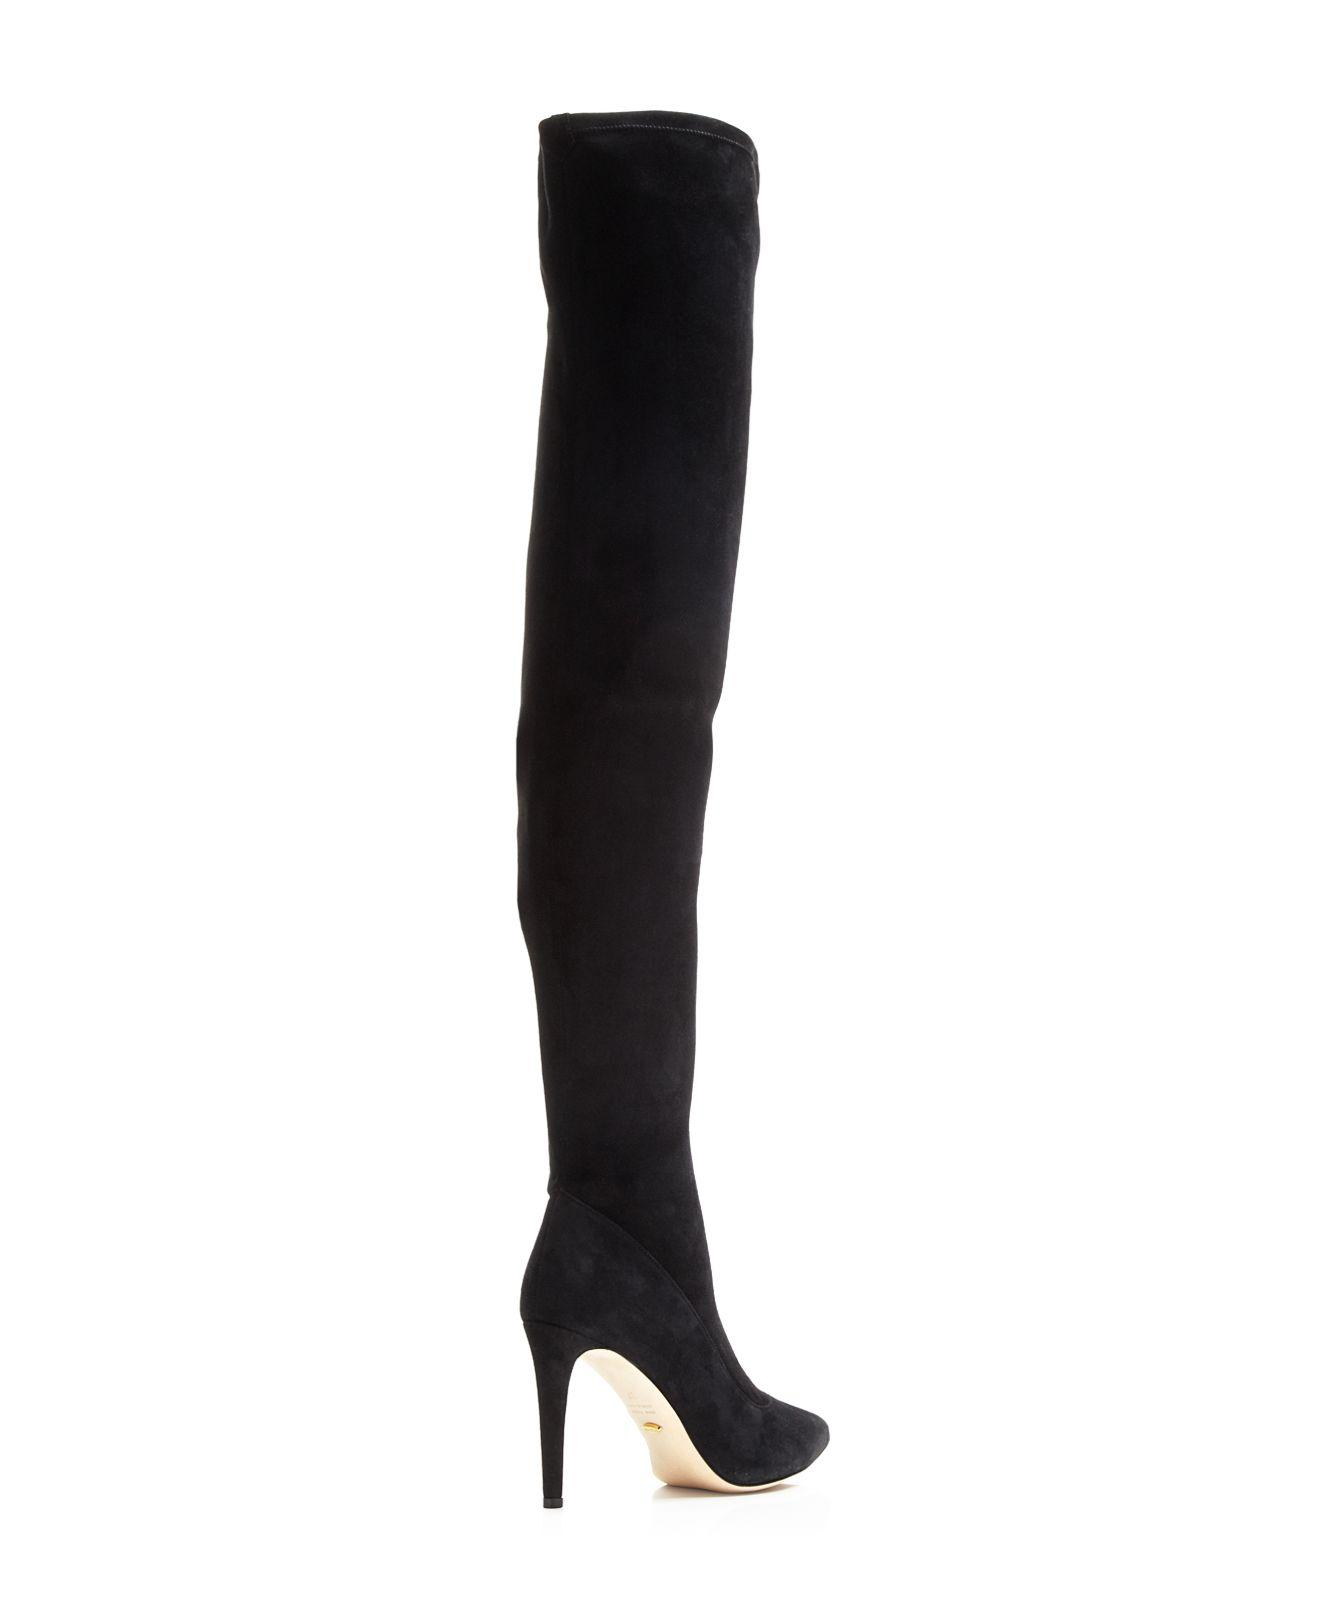 Sergio Rossi Suede Embossed Over-The-Knee Boots clearance perfect cheap price fake LxhO1x6oDf